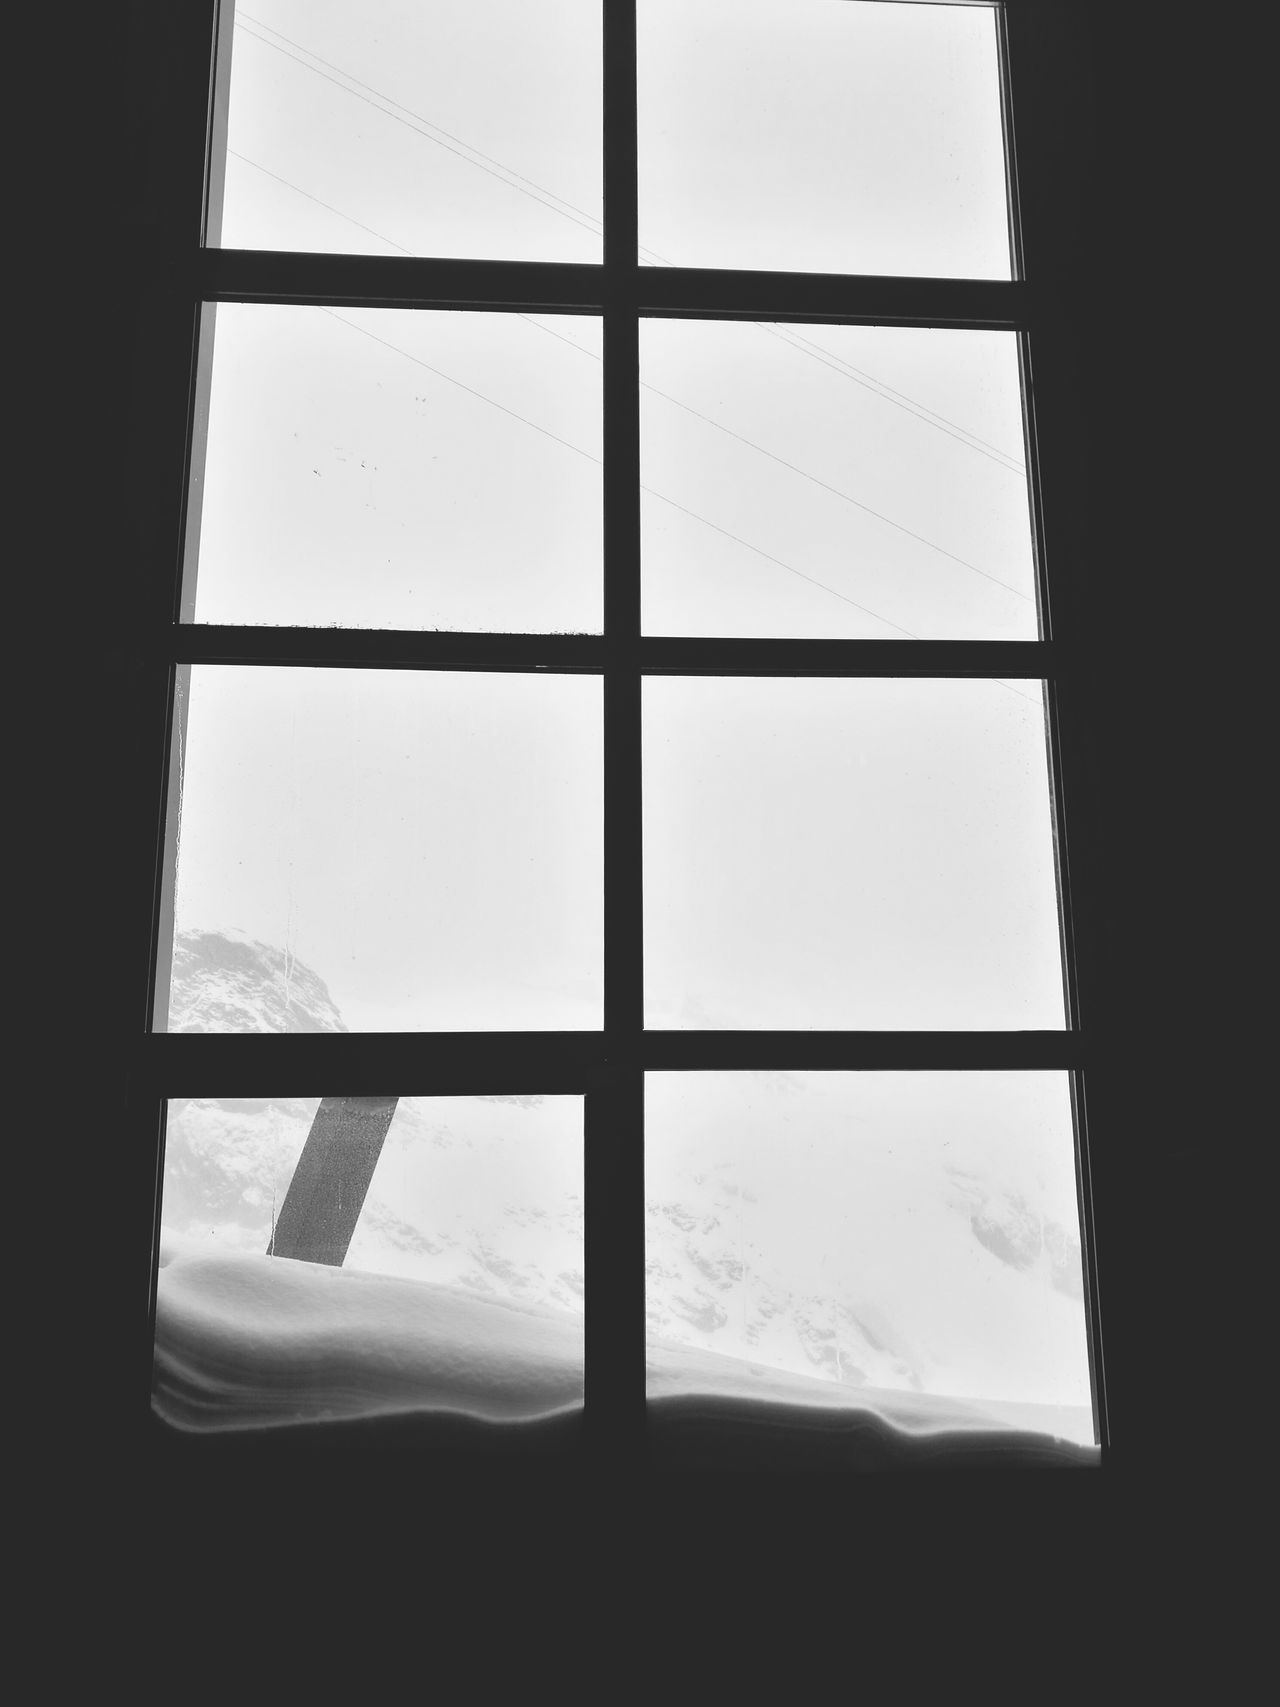 let it snow let it snow let it snow🌨🌨 Window Transparent Indoors  Sky Day No People Snow ❄ Fog Followme Winter Follow4follow EyeEm Gallery Bestoftheday Pictureoftheday EyeEm Best Shots 3XSPUnity Beauty In Nature Swiss Alps Mountain Cold Temperature Saasfee Snowboard EyeEm HuaweiP9 Fff